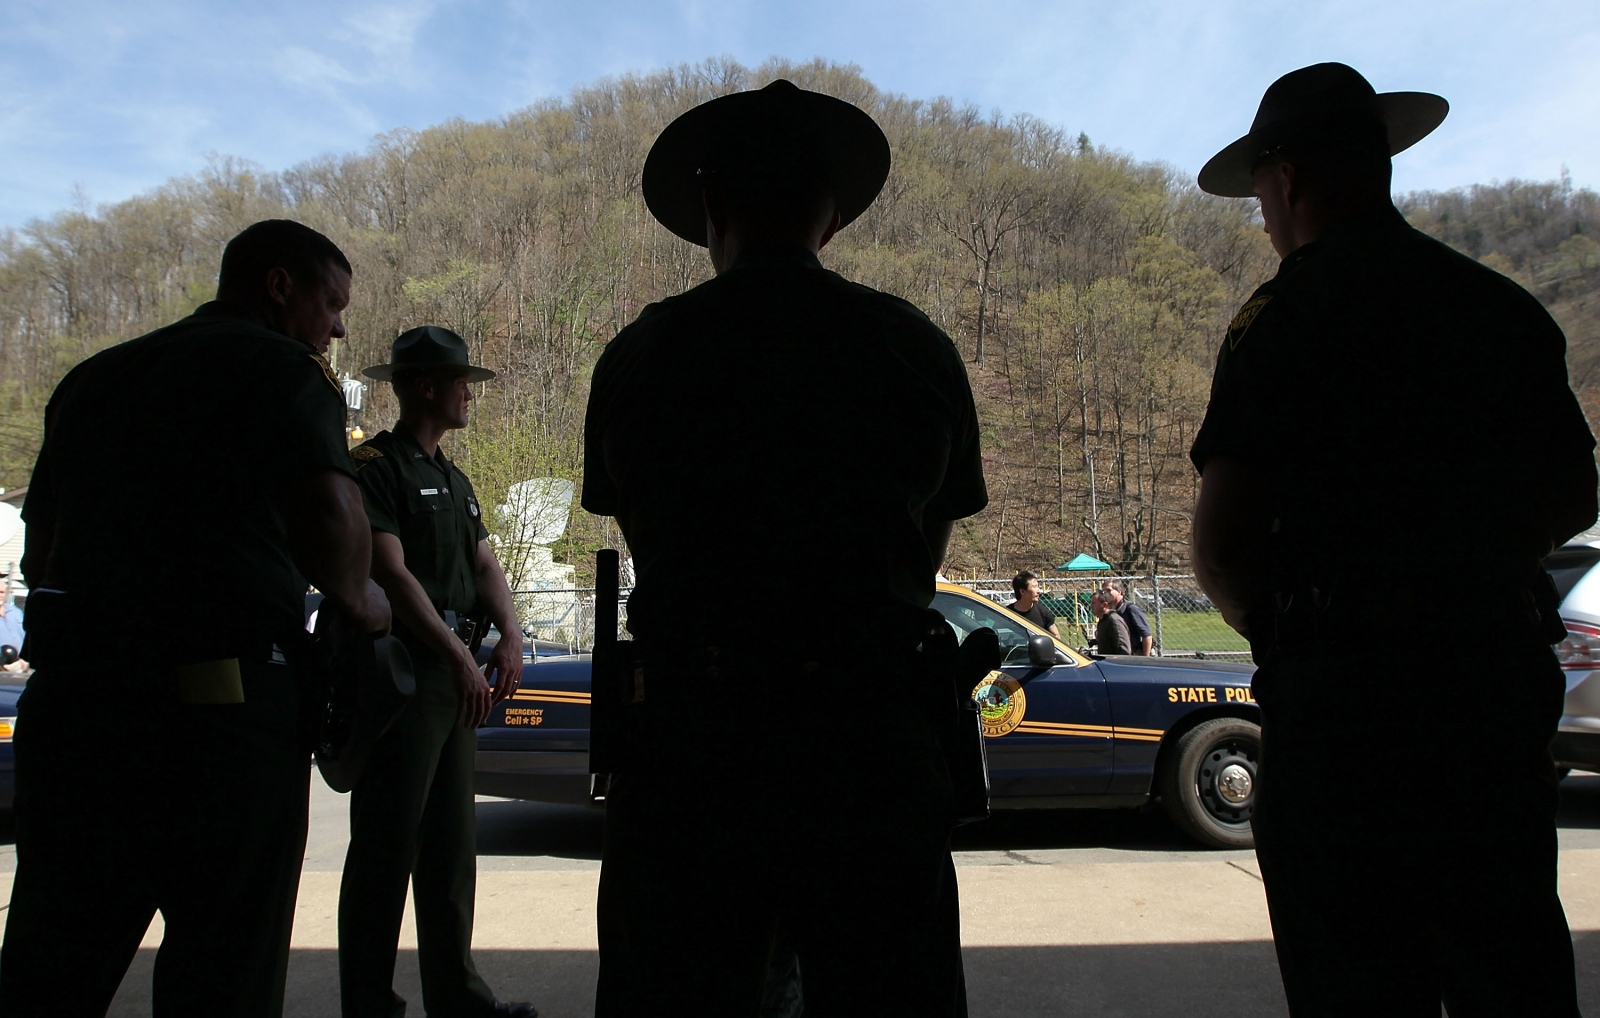 West Virginia state police officers